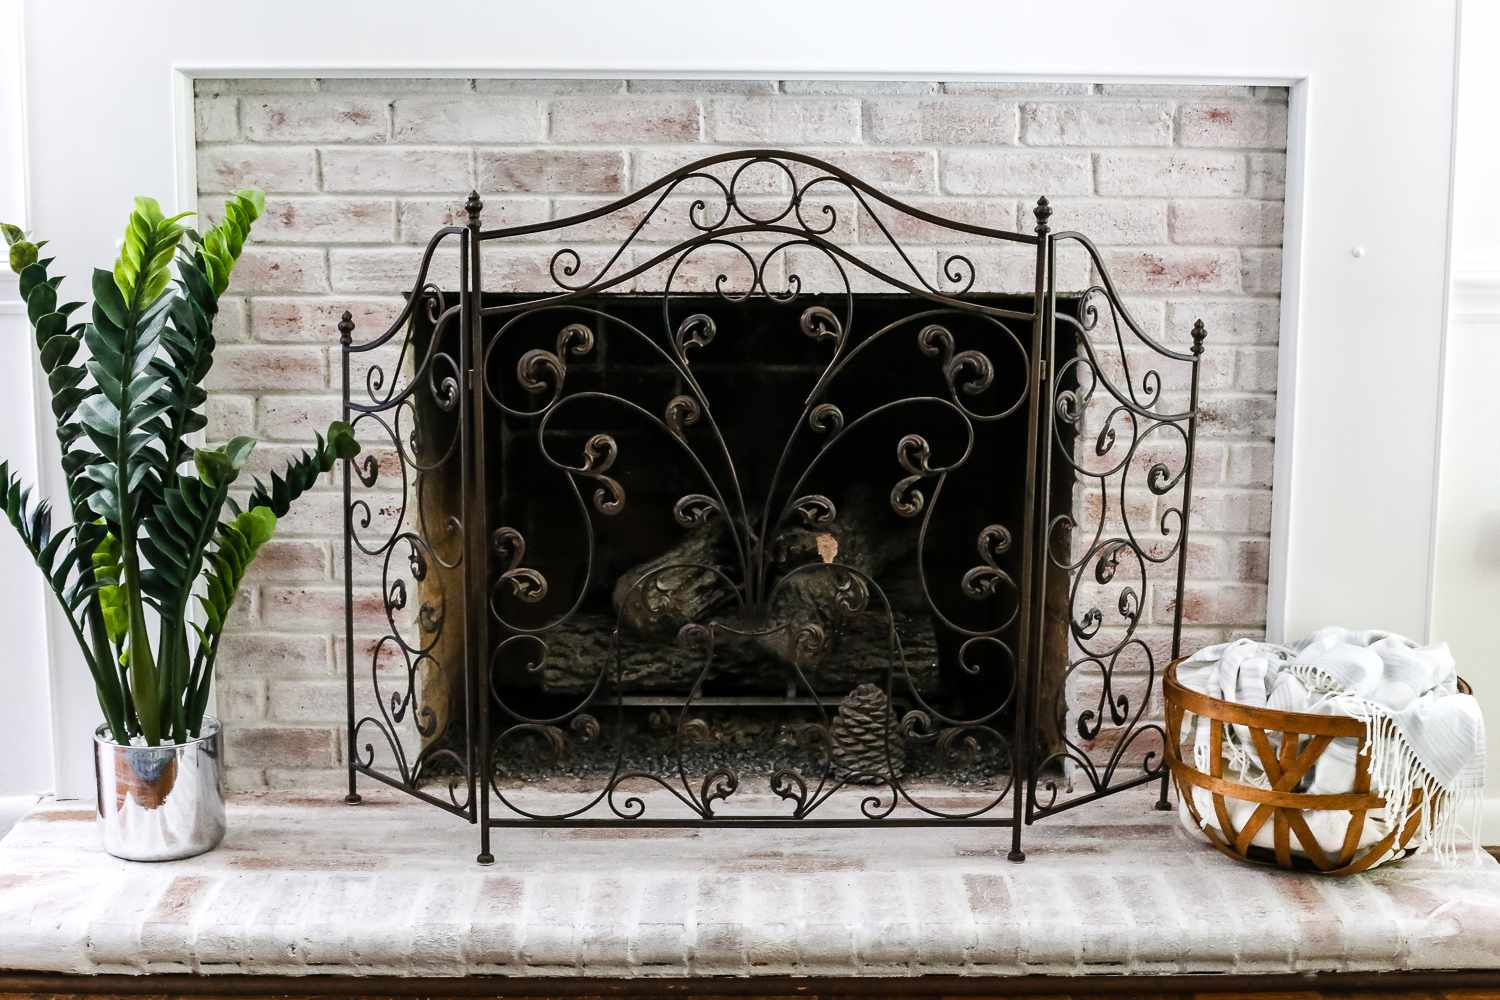 vintage french iron hand fireplace by ideas screen custom home decor made crafted wrought screens renovation design